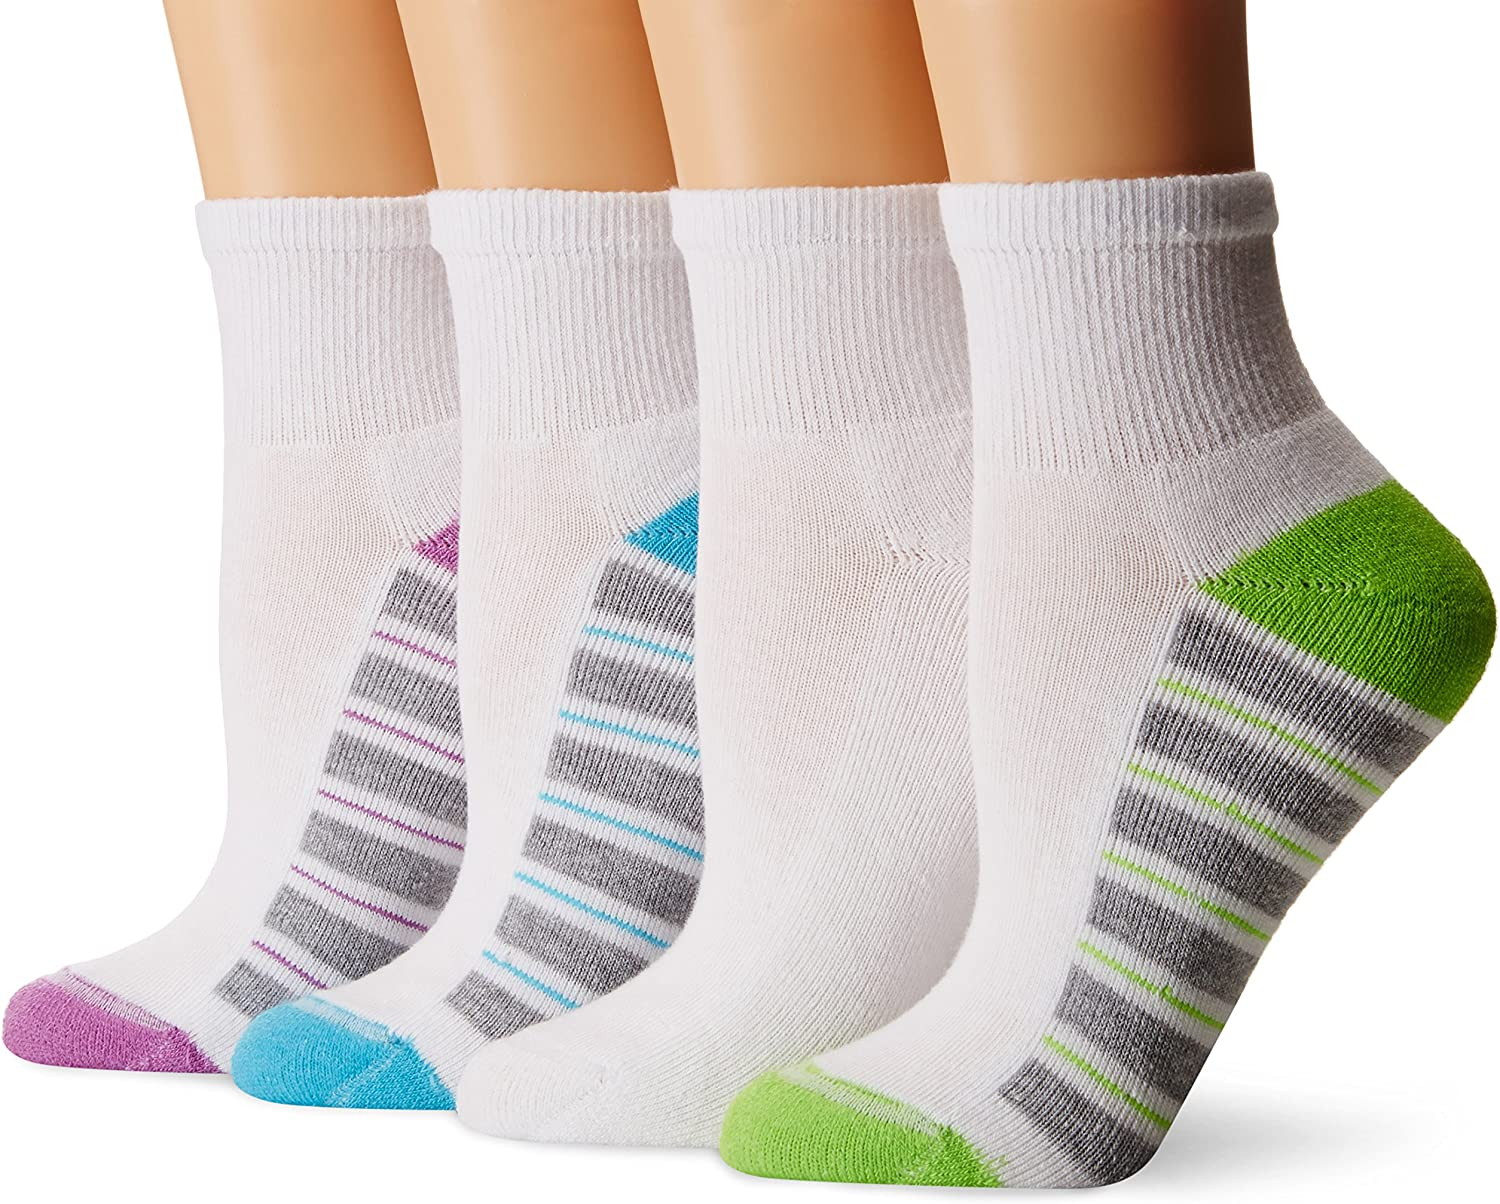 Hanes Womens Cool and Dry ComfortBlend Ankle Socks 6-Pack